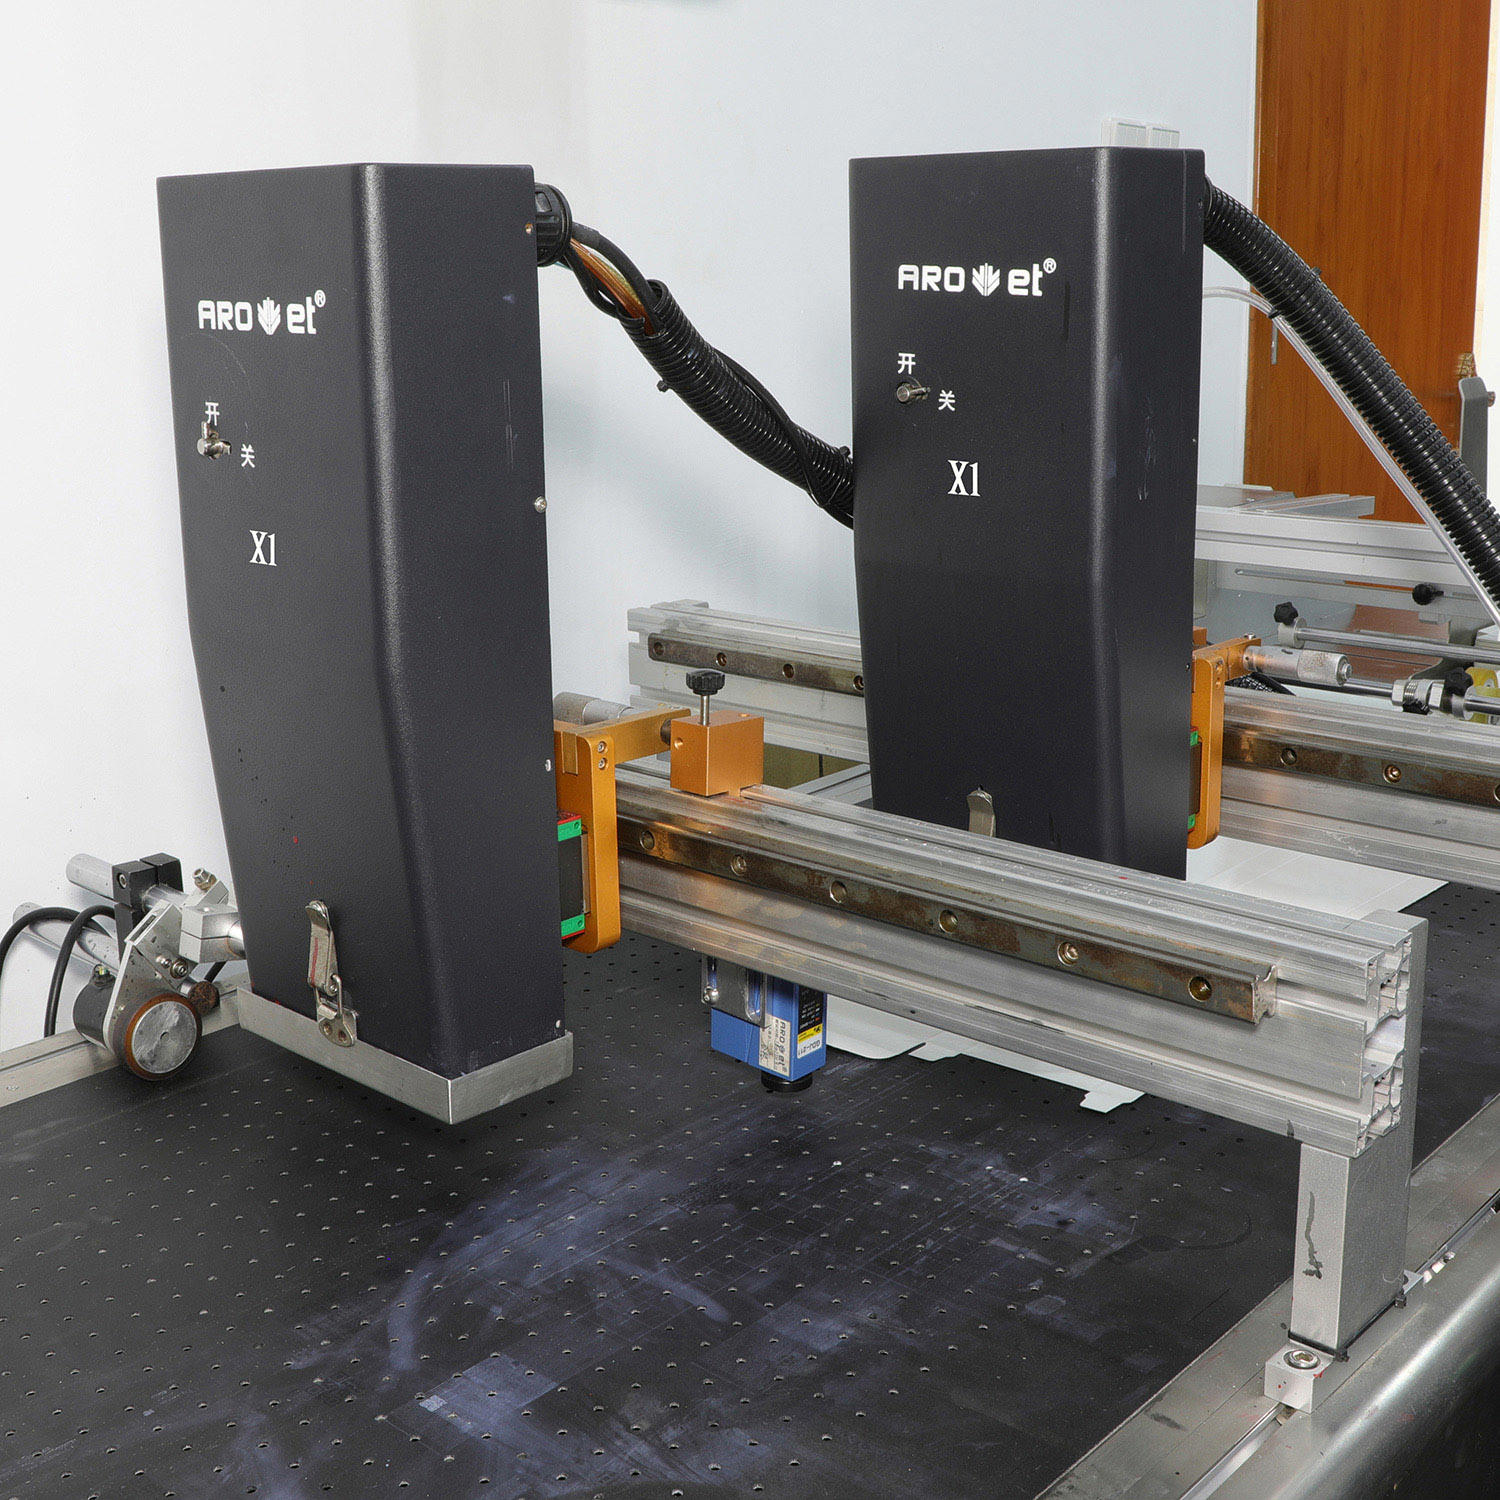 Fully Automatic Sheet-Fed Numbering Boxes System